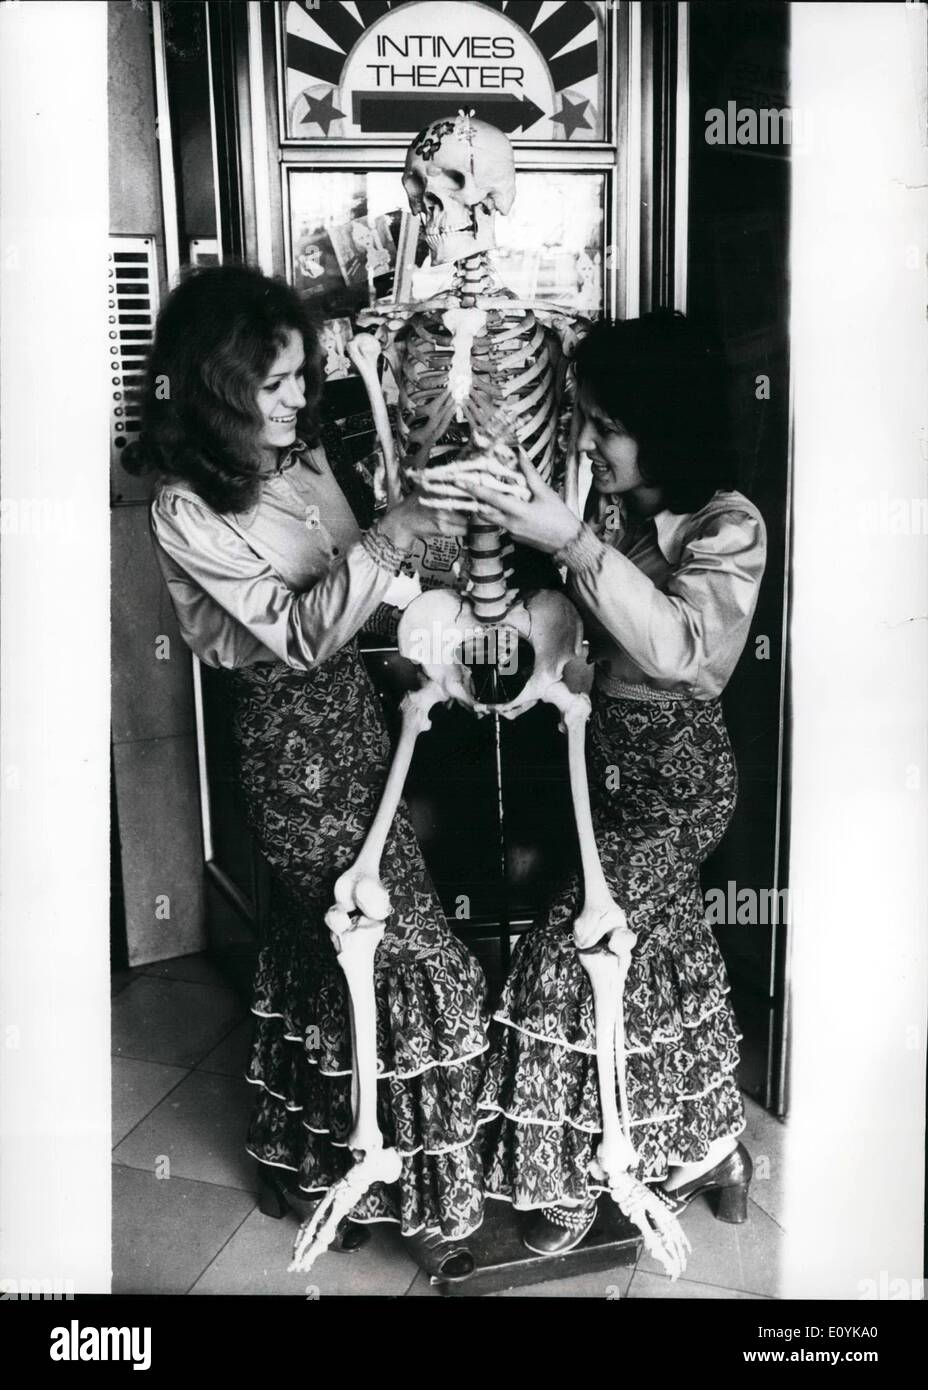 Aug. 08, 1970 - A new gag: is having the ''Intimes Theater'' in Duesseldorf, W. Germany, not in its programme, though, but after the show. As a souvenir the visitors can have a rather extravagant photo made of themselves - together with a plastic skeleton, with which our two ''maxi-girls'' are posing here (photo) - Stock Image